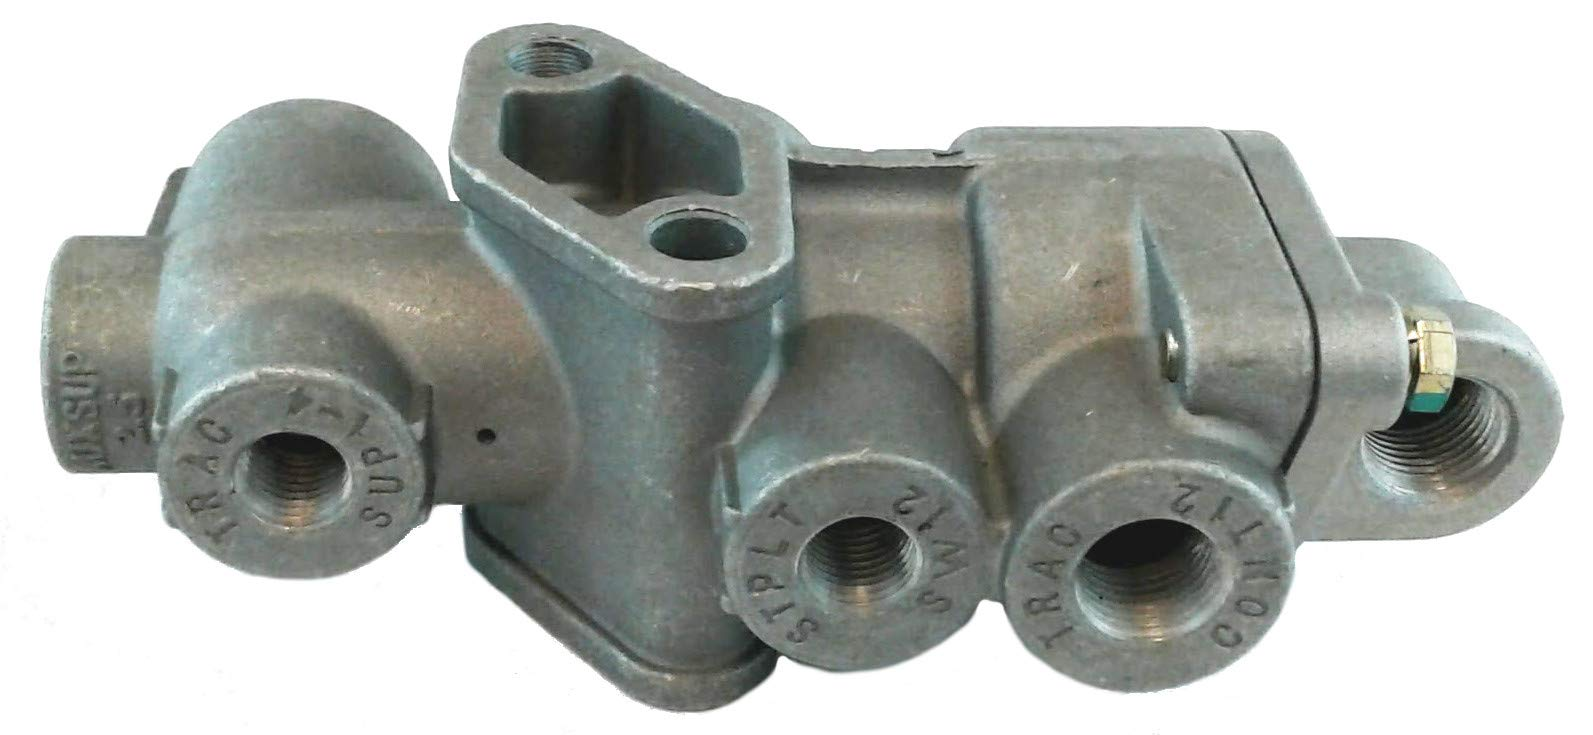 Two-Line Manifold TP-3DC Tractor Protection Brake Valve for Heavy Duty Big Rigs